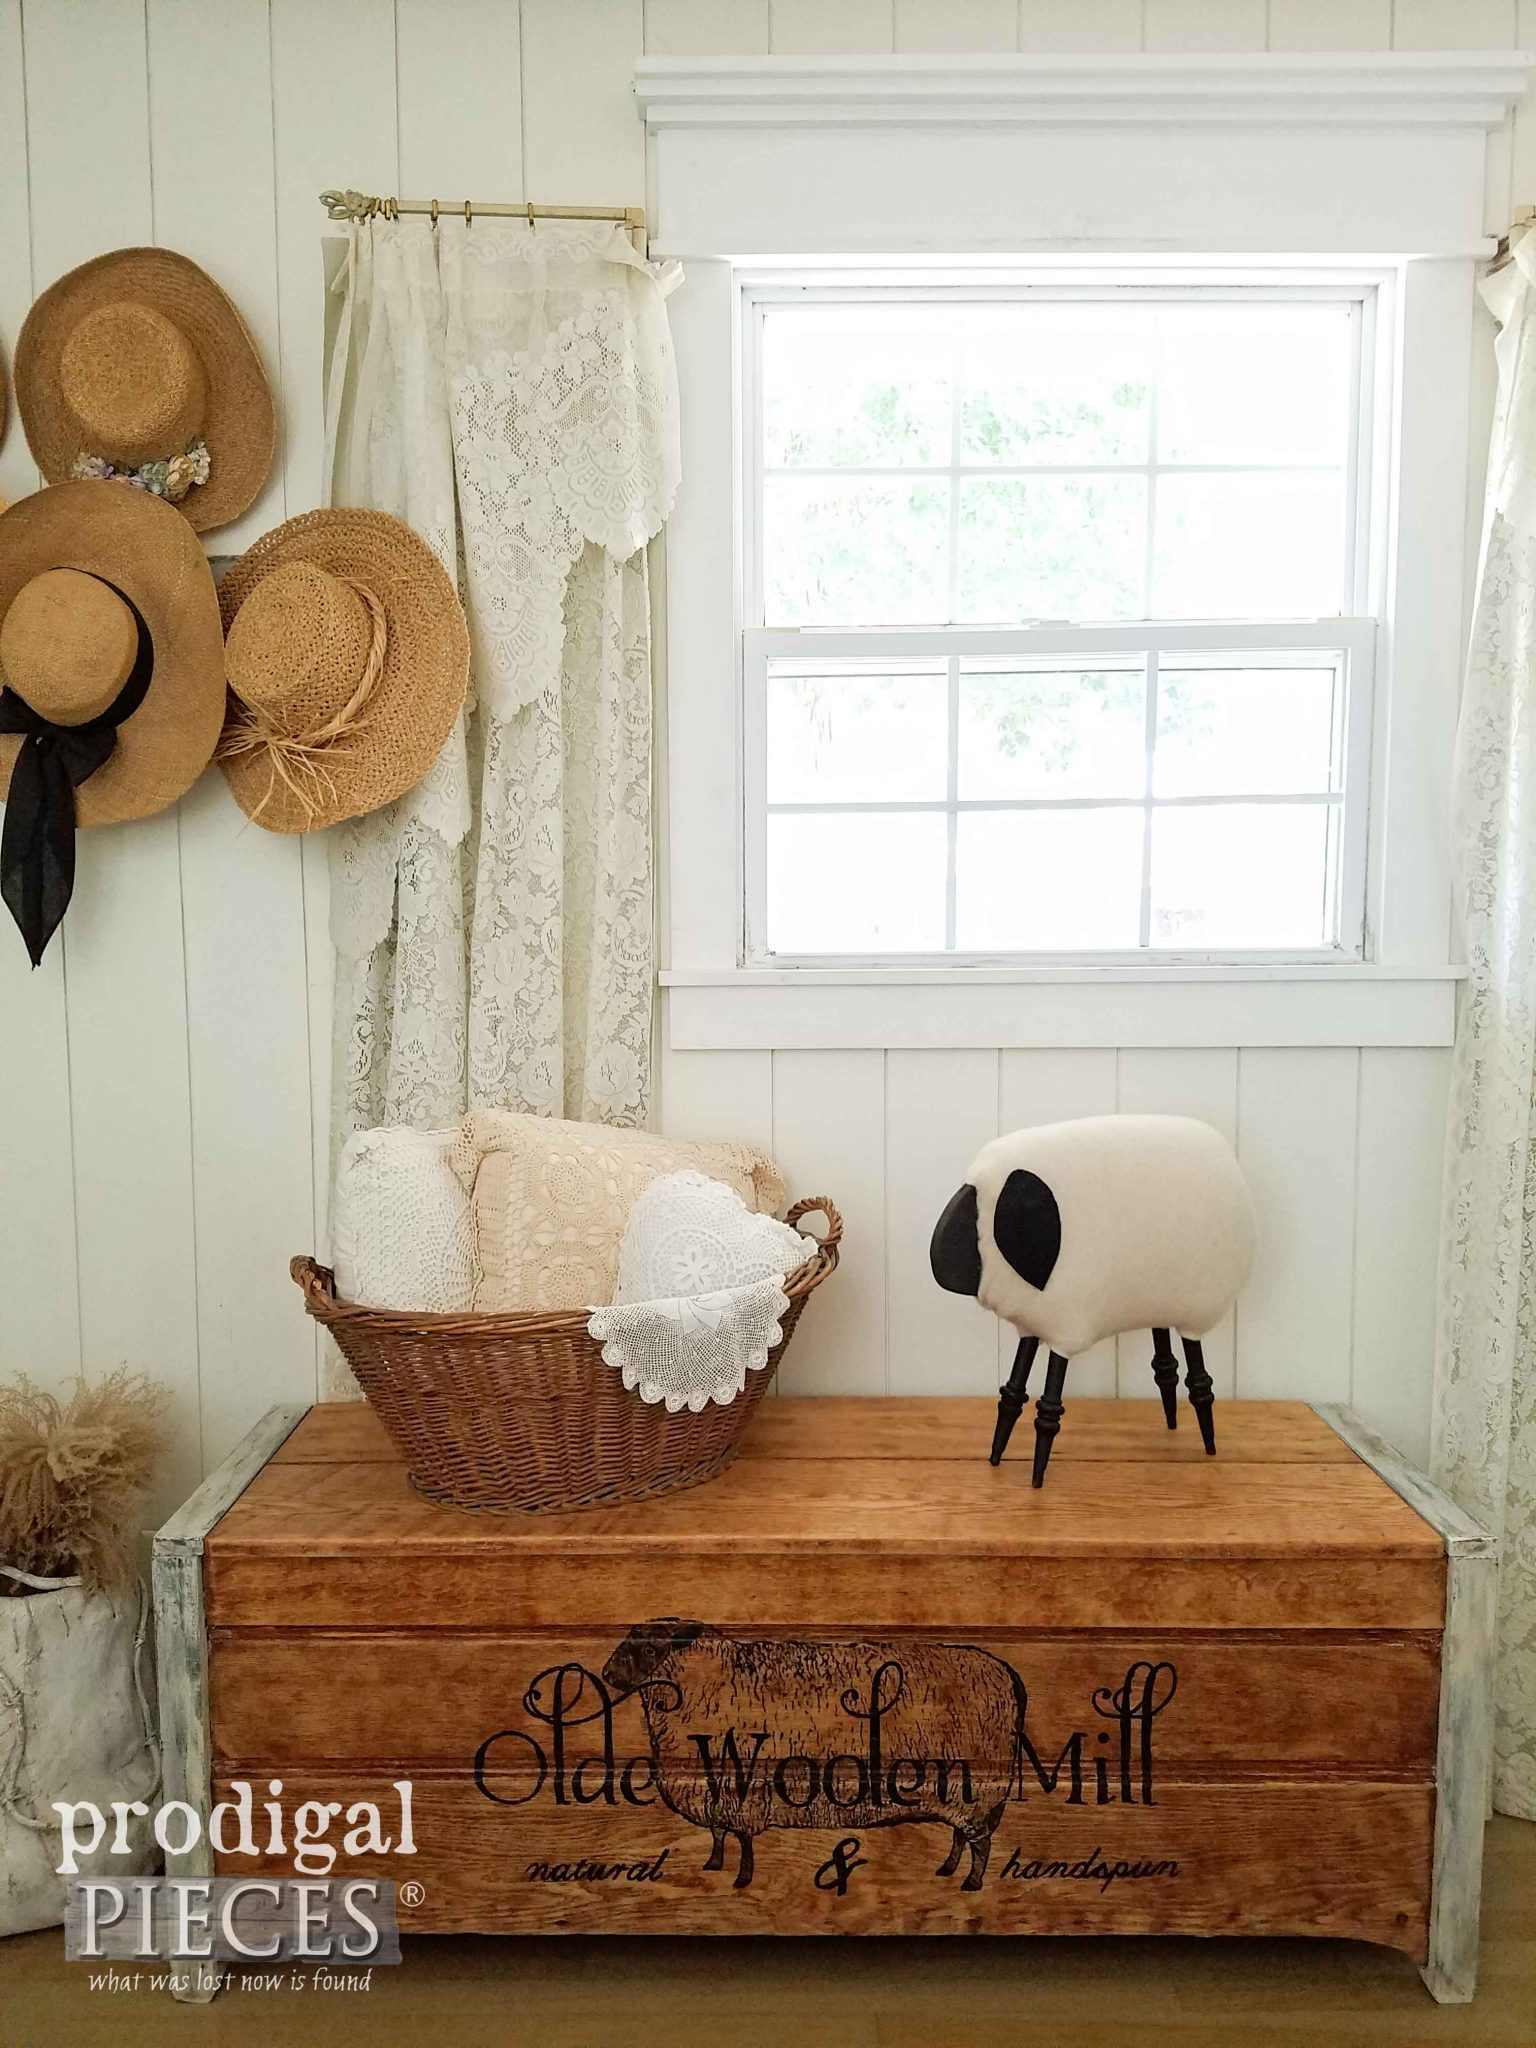 Rustic Farmhouse Style Blanket Chest with Typography by Prodigal Pieces | prodigalpieces.com